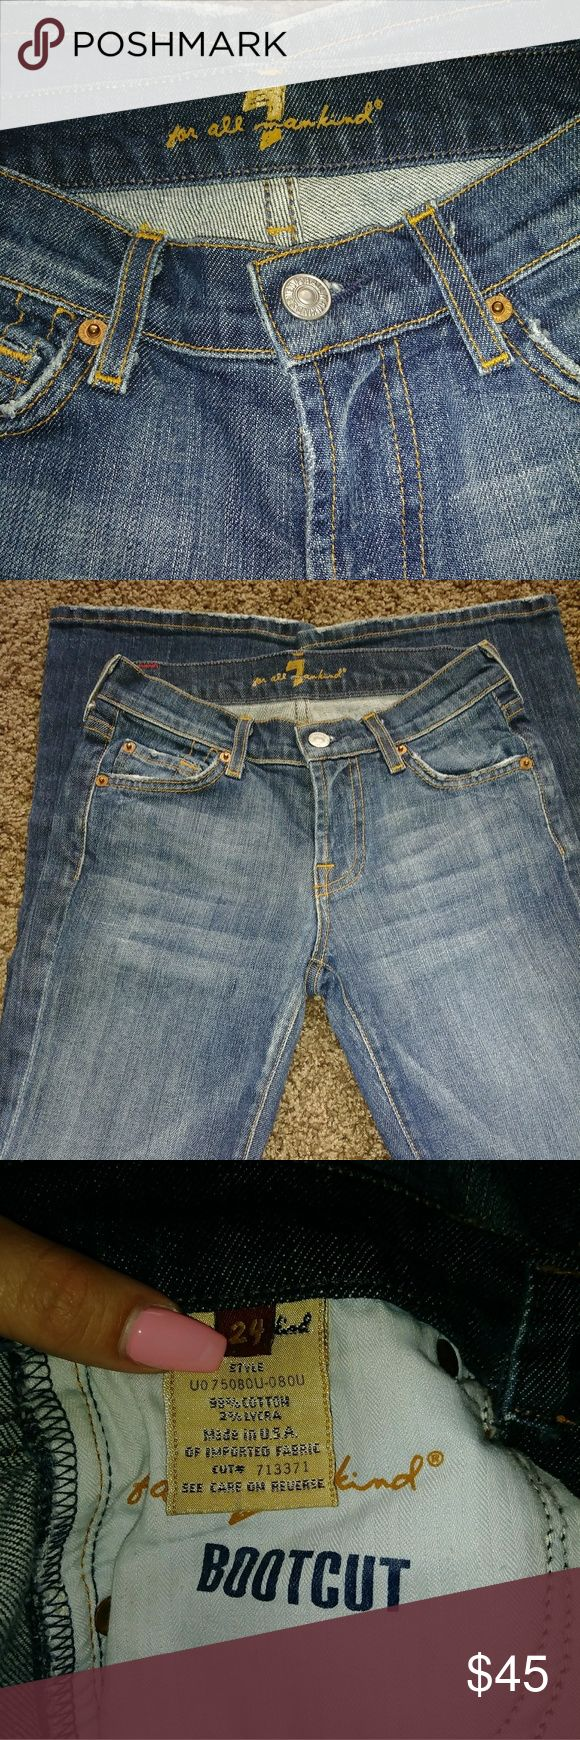 """7 for all Mankind"" Women's Bootcut Jeans Size 24. Bootcut, 7 for all Mankind, blue jeans. 7 For All Mankind Jeans Boot Cut"